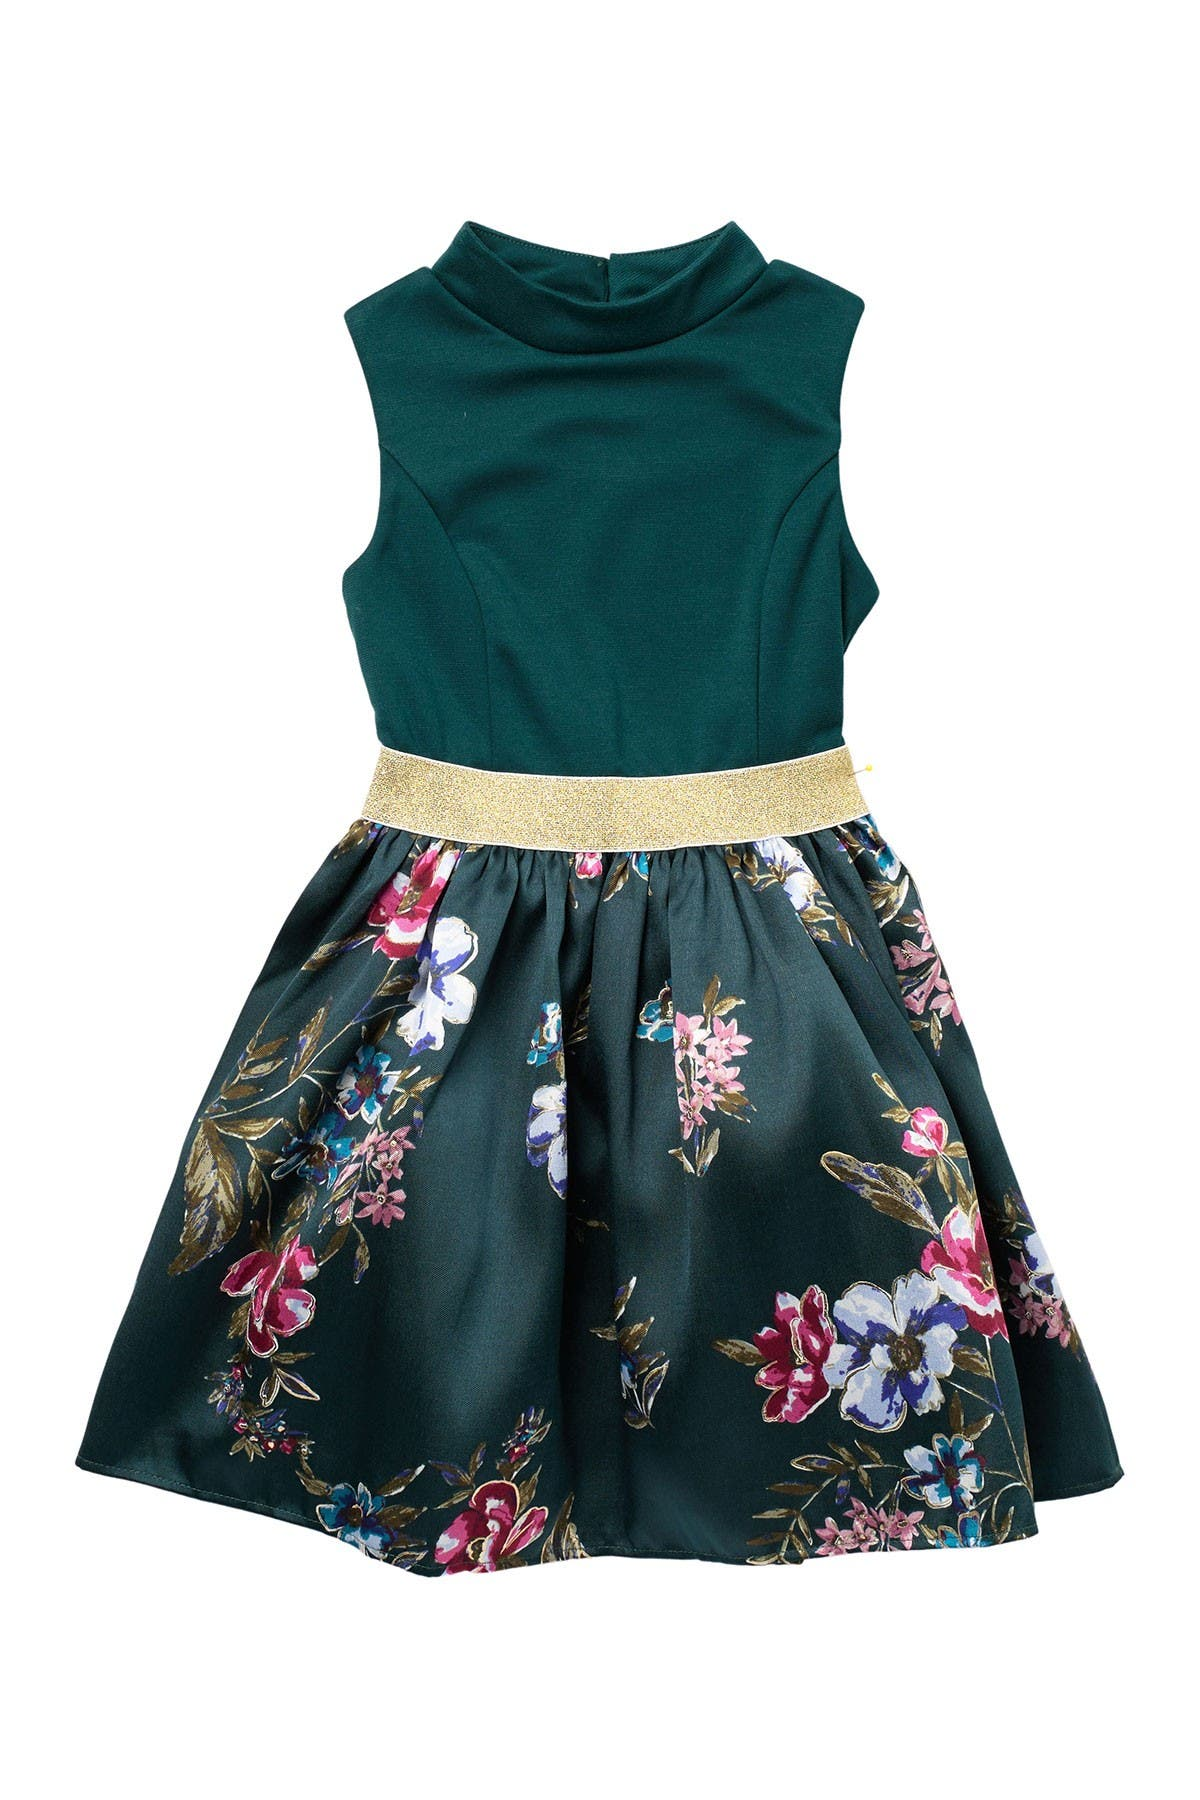 Image of Zunie Mock Neck Sleeveless Floral Print Fit & Flare Dress